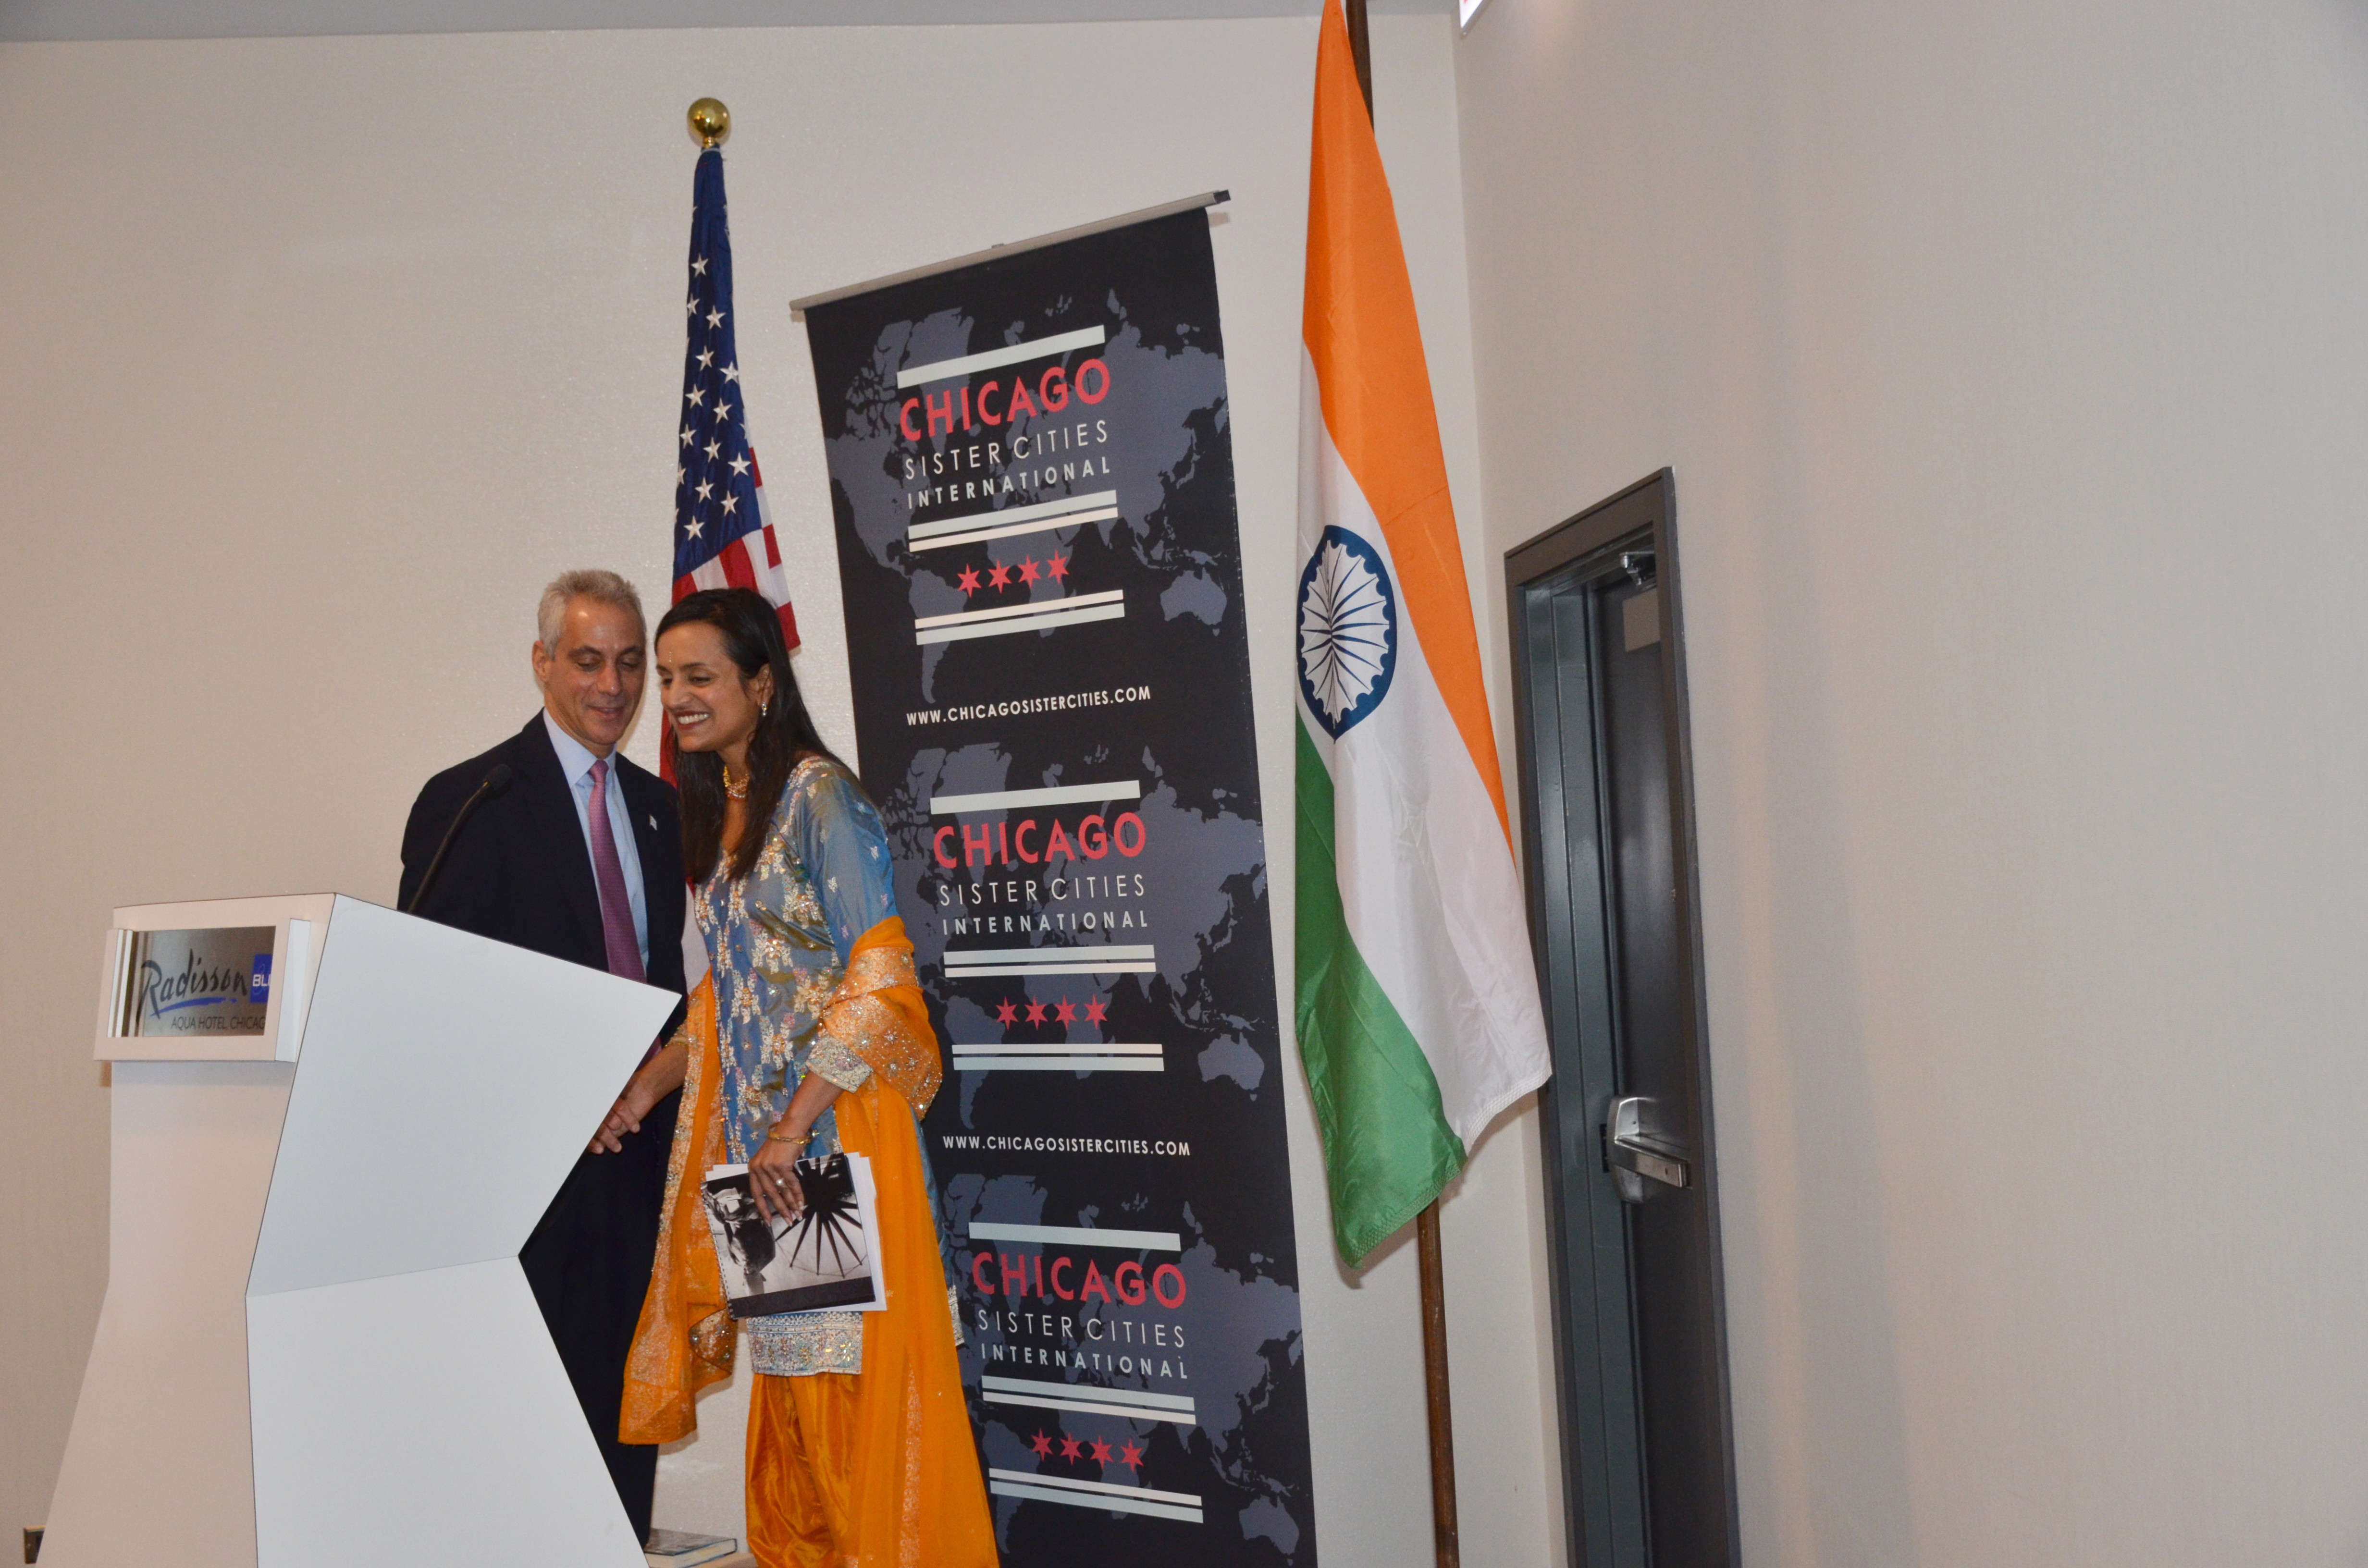 delhi committee hosts legacy of mahatma gandhi event chicago delhi committee hosts legacy of mahatma gandhi event chicago sister cities international bringing the world to chicago and chicago to the world